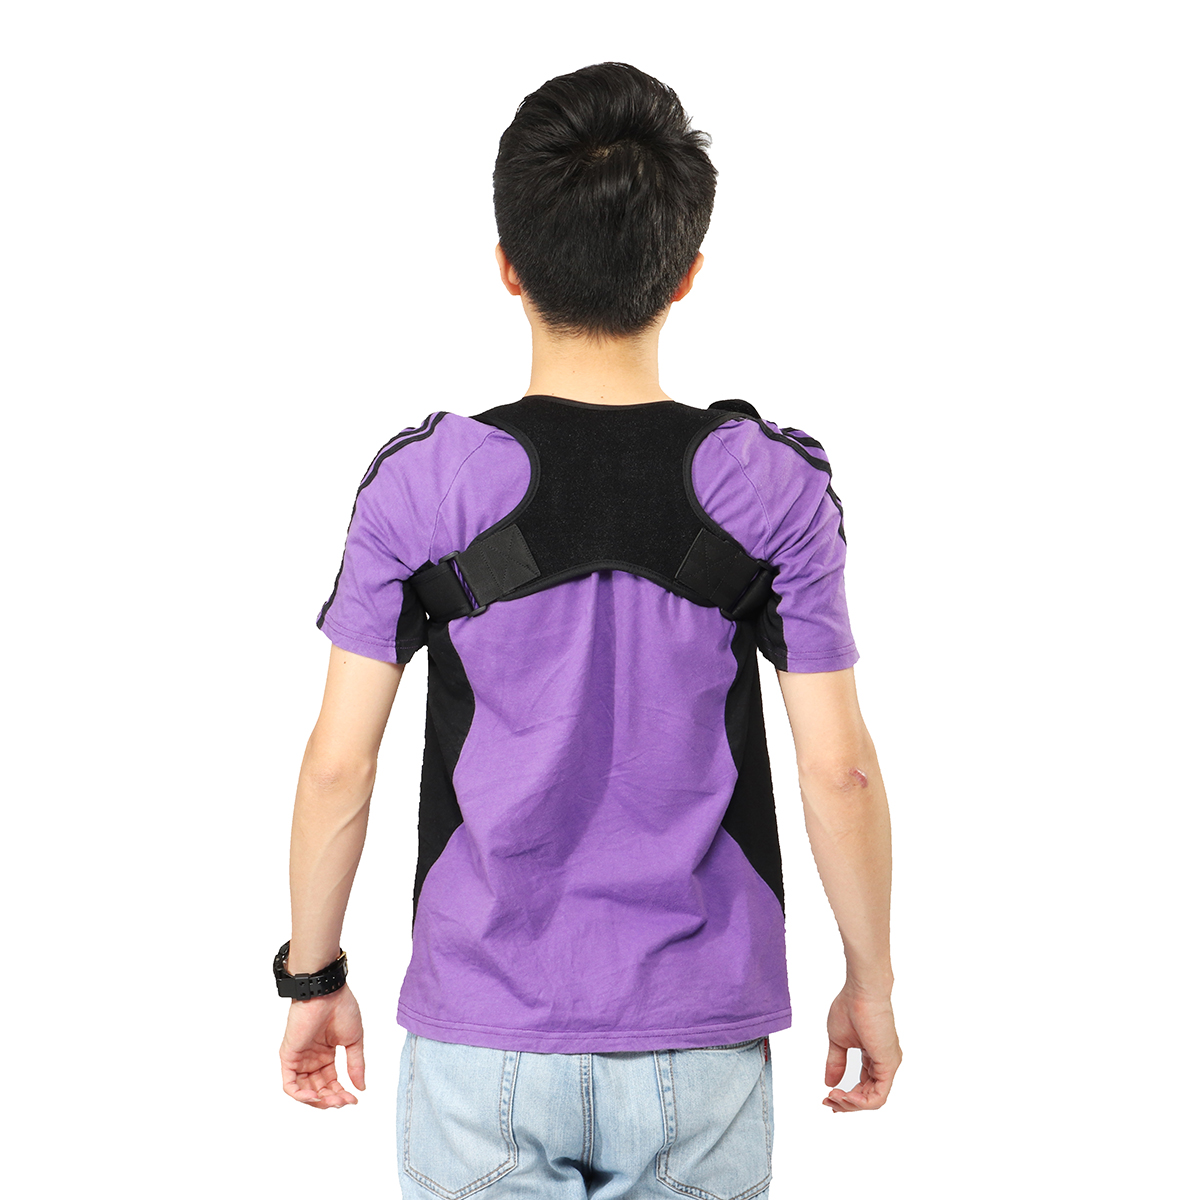 Back Brace Posture Corrector Adjustable Support Brace Lumbar Support Lower and Upper Back Pain Men and Women